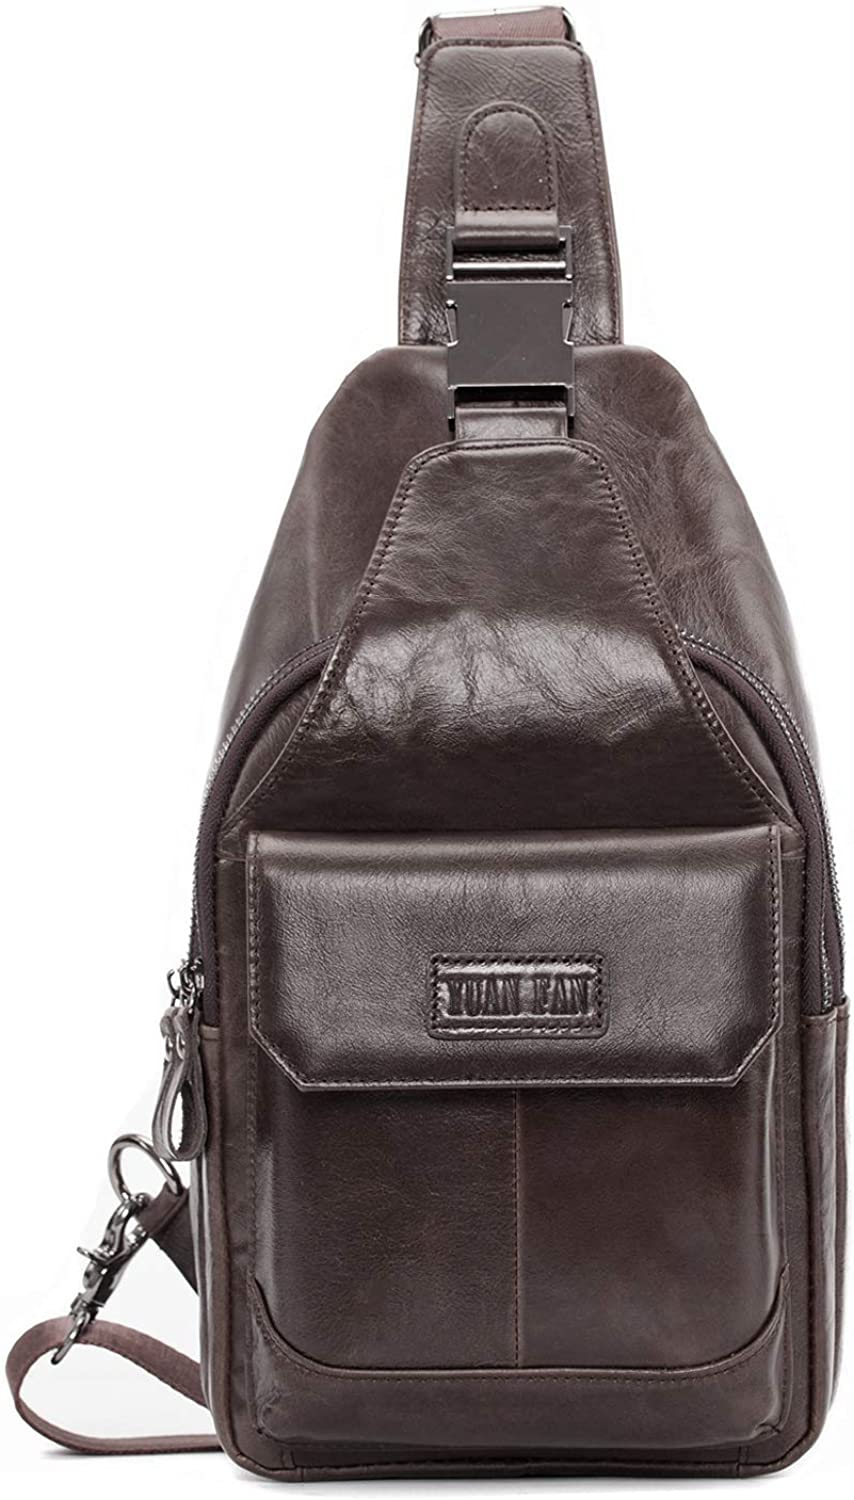 Men's Genuine Leather Crossbody Sling Bag,Chest bag,Hiking Backpack Water Resistant Anti Theft